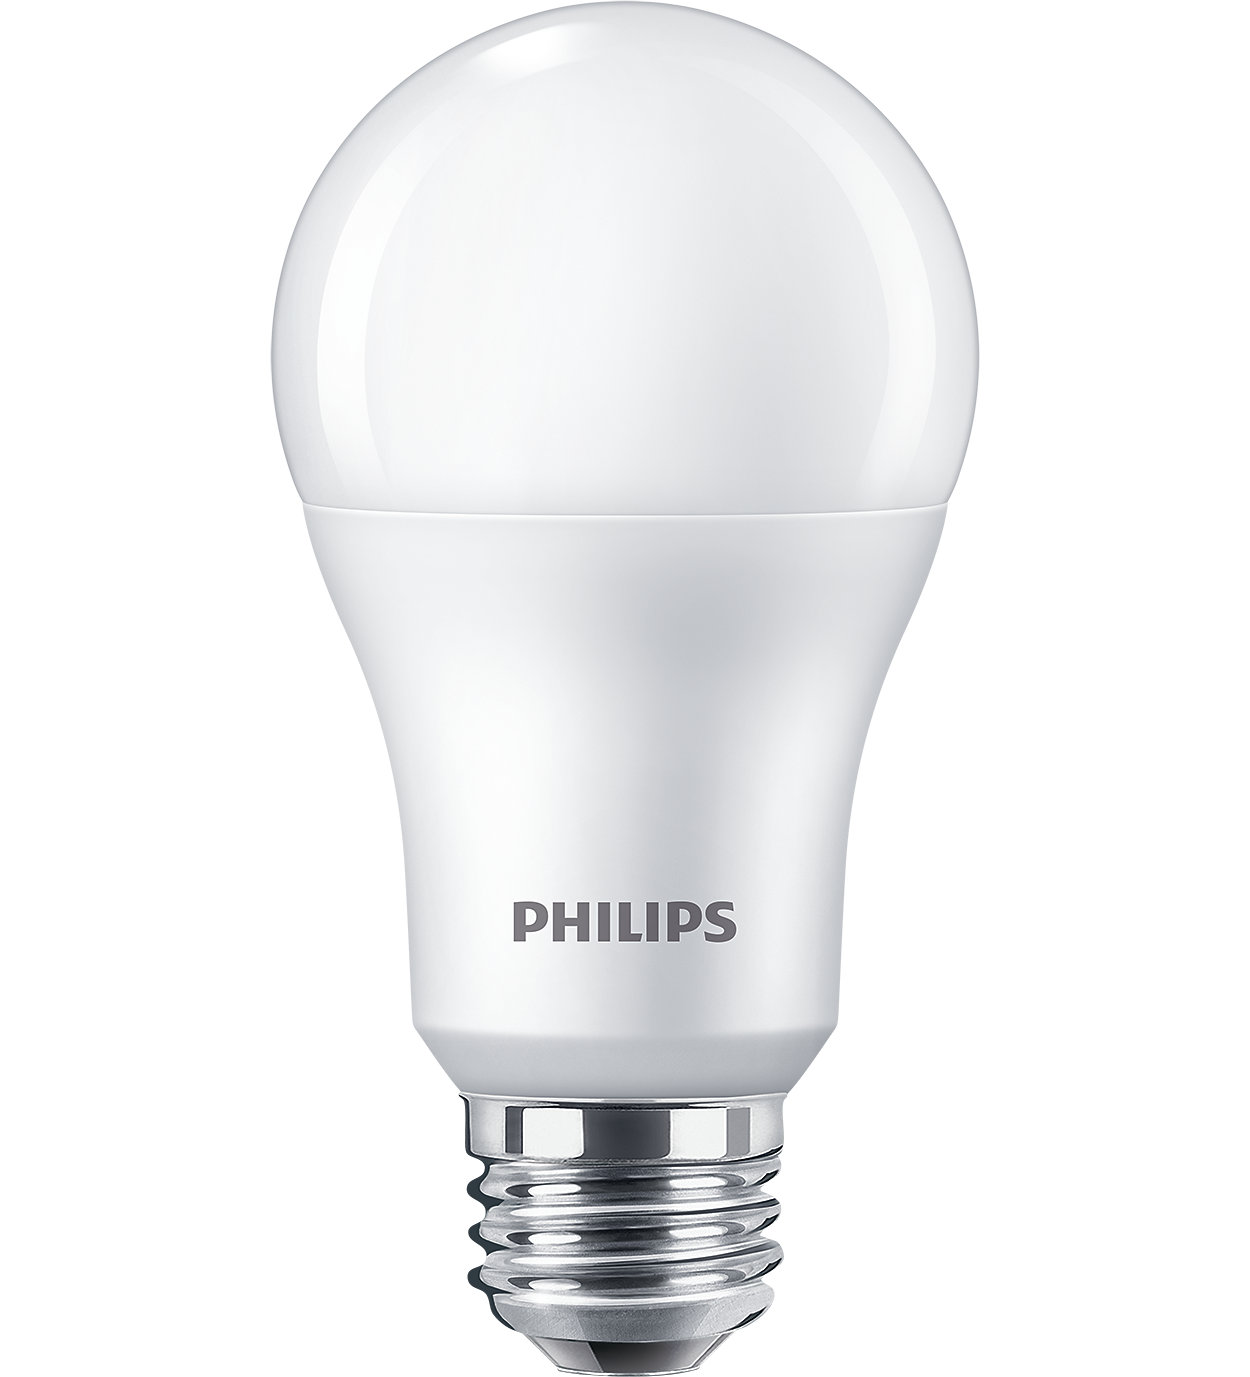 A light bulb like no other